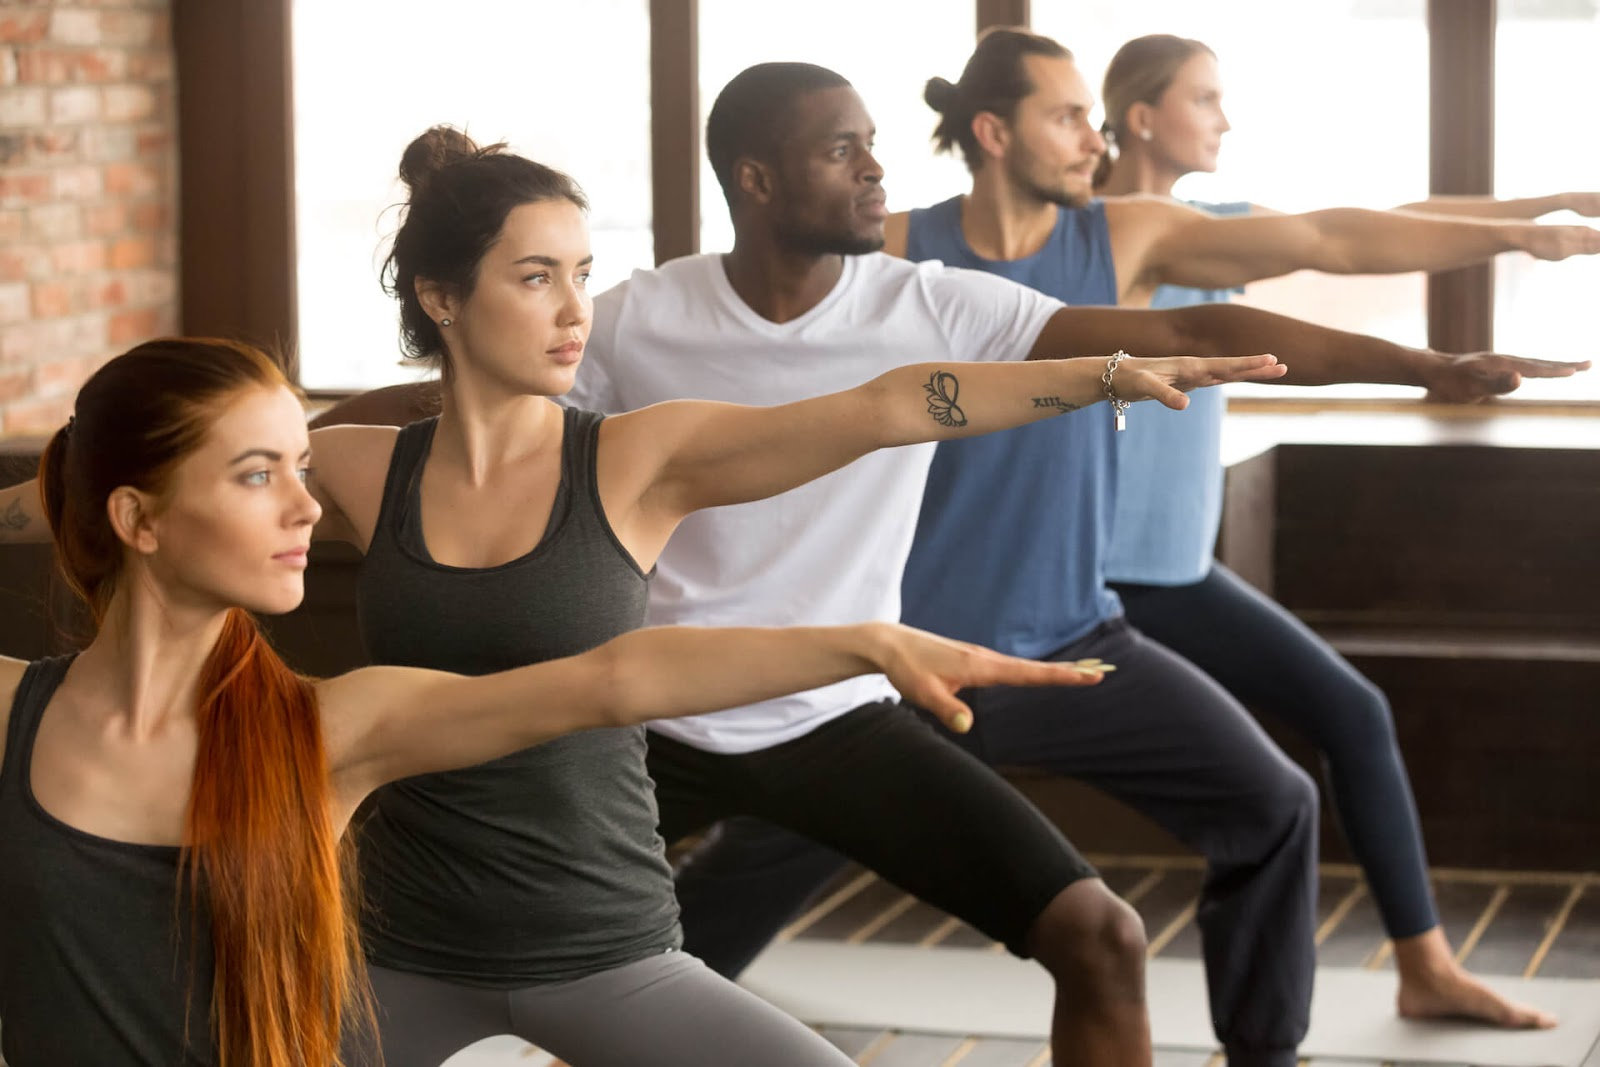 Group of people doing yoga in a studio